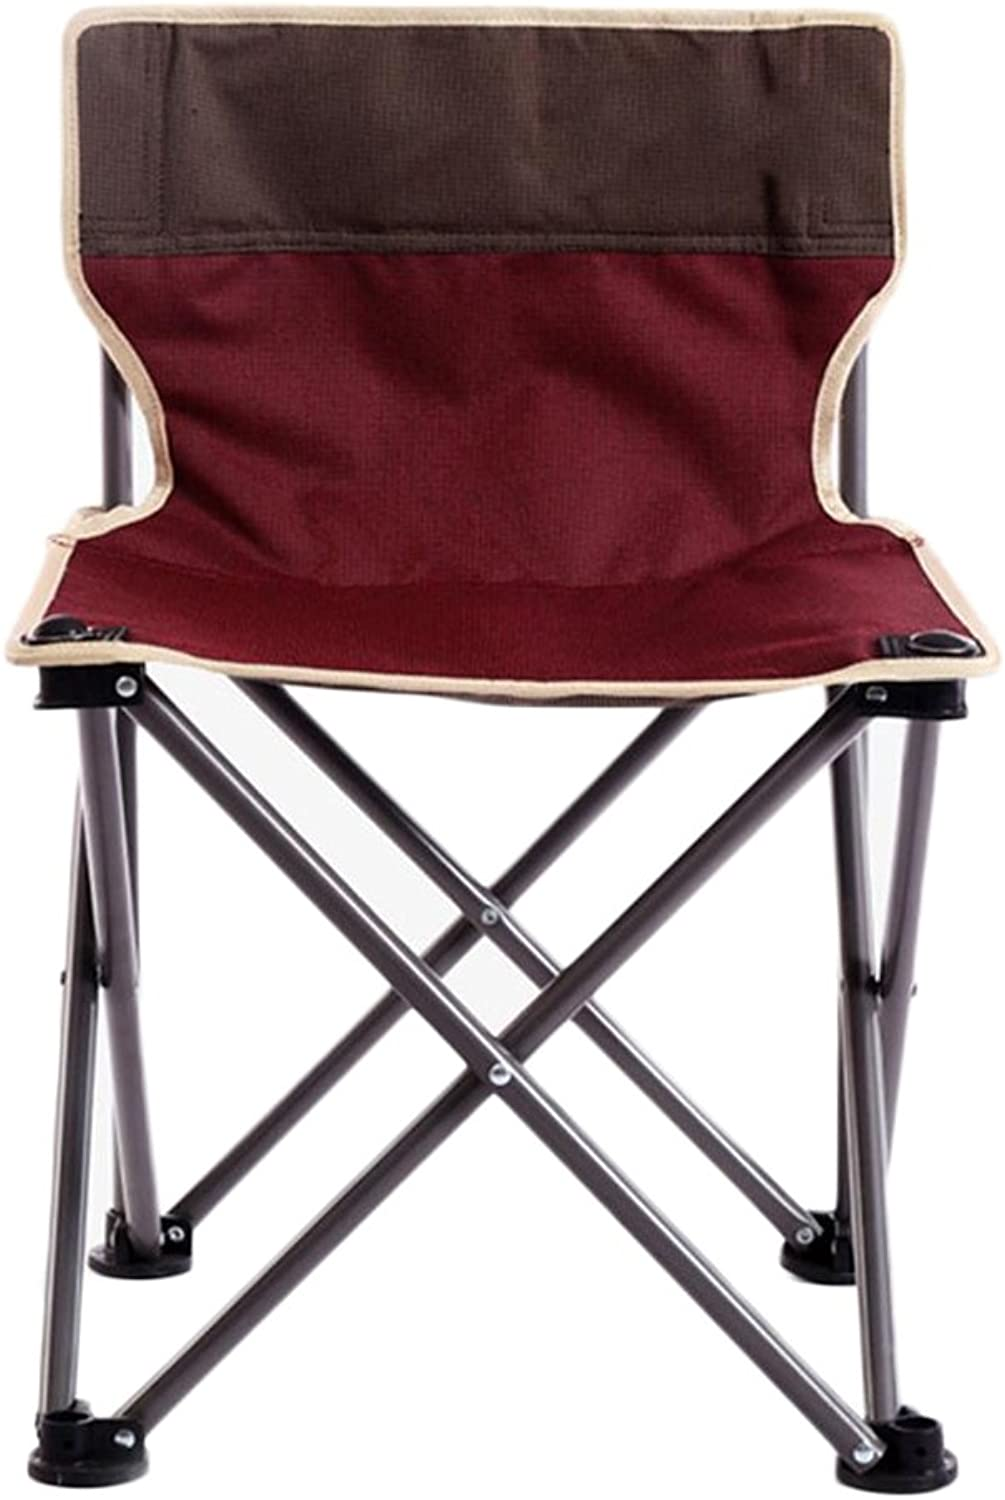 Homepage Outdoor Folding Chair, Small Horse Bar, Stool, Folding Chair, Portable Backrest Stool